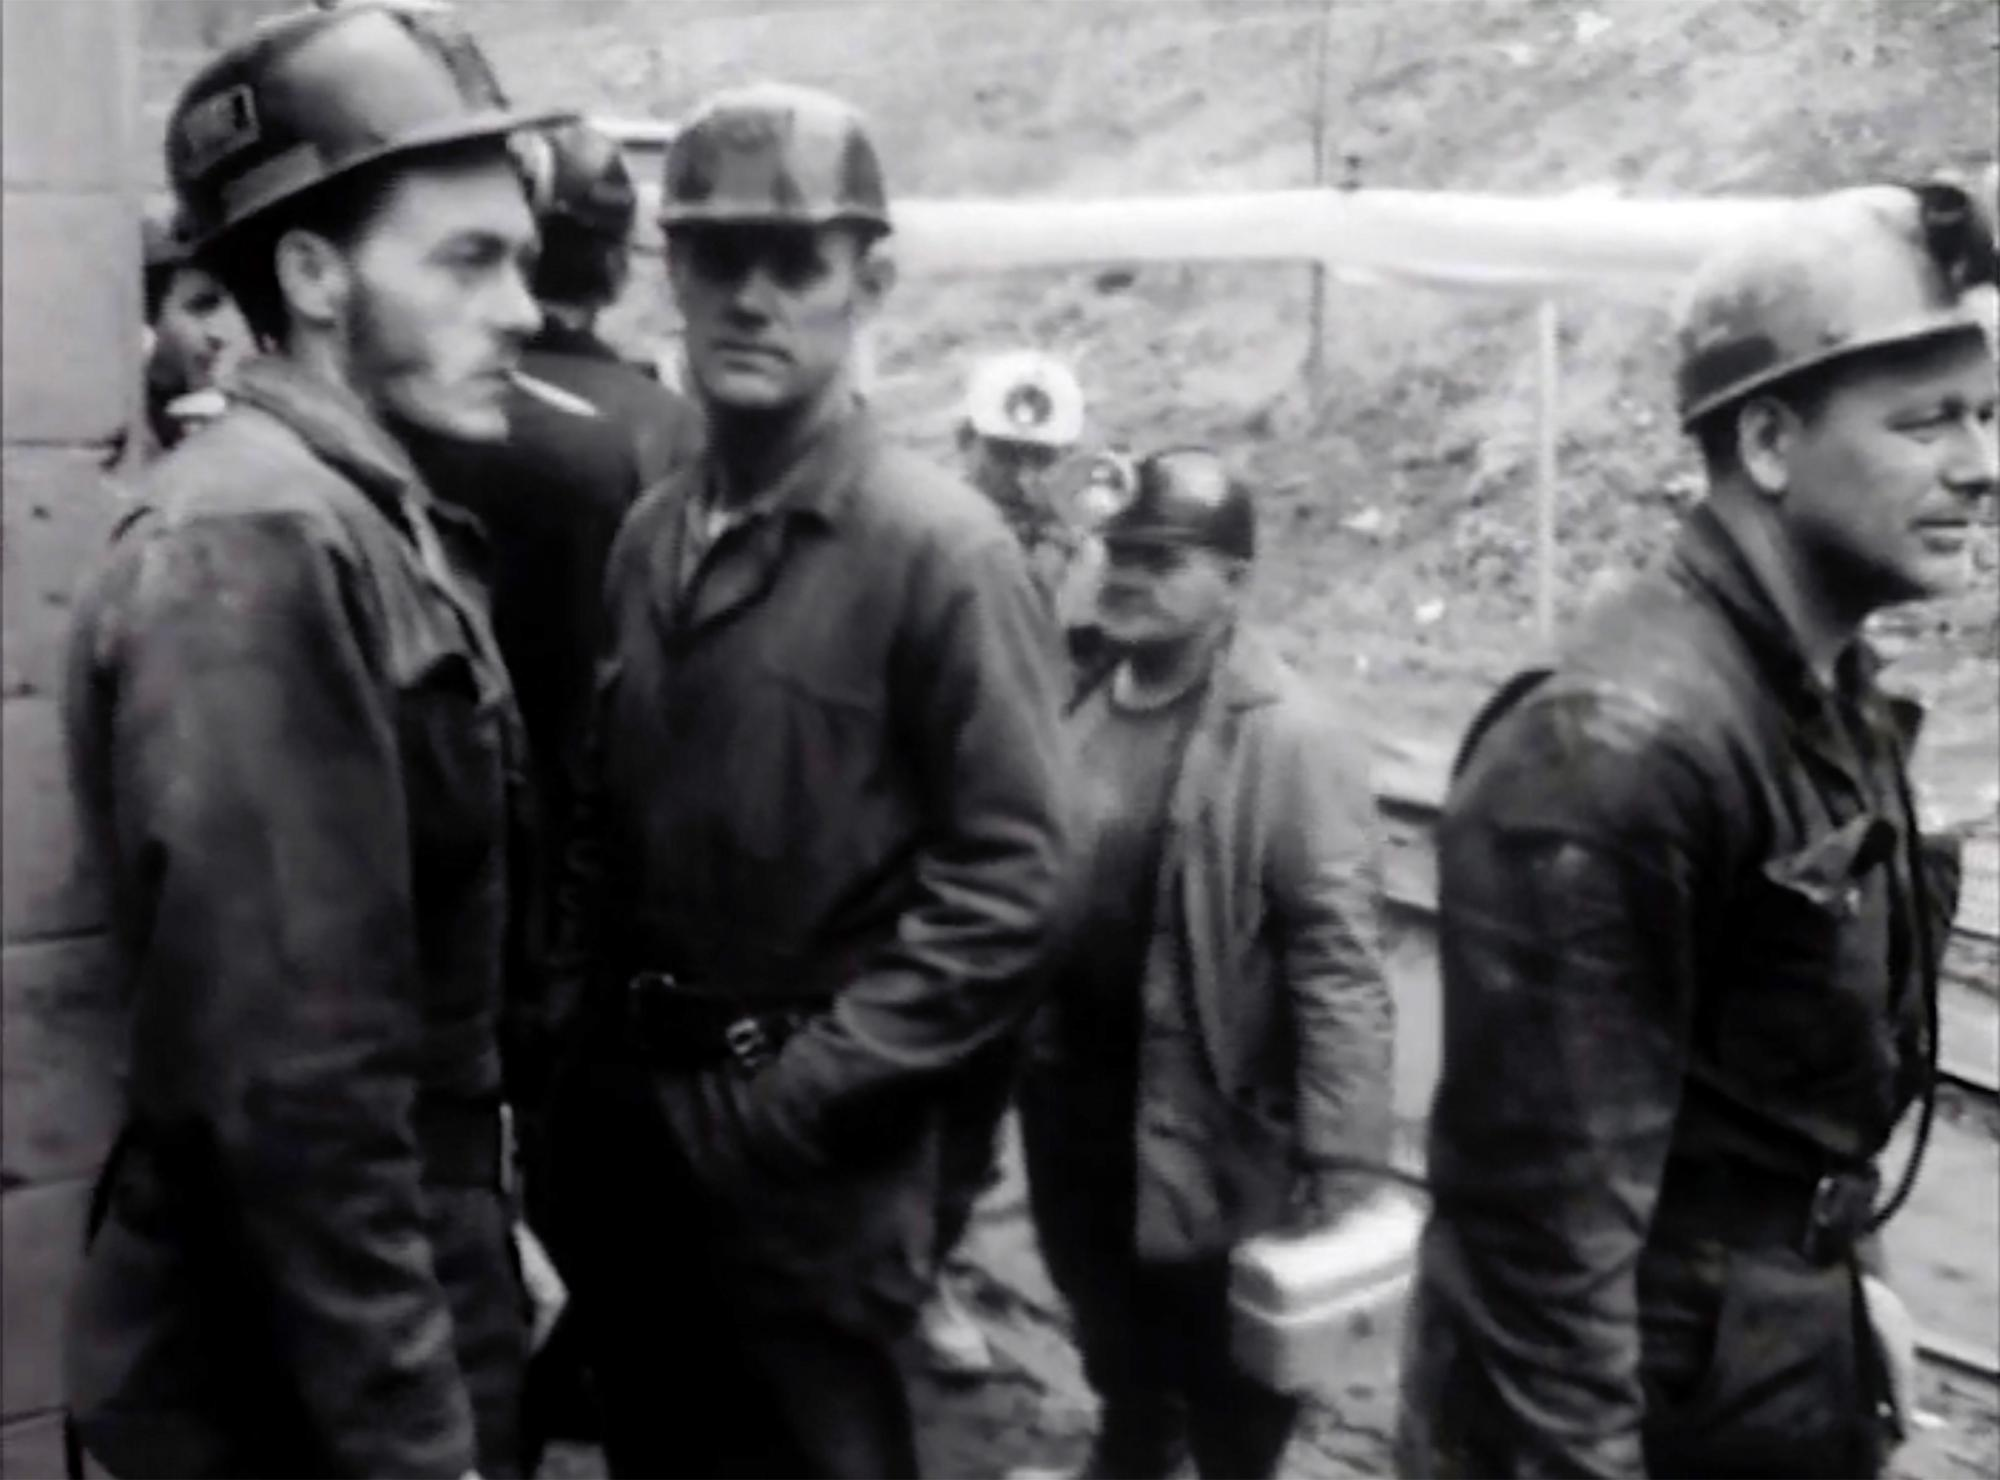 The United Mine Workers of America 1970: A House Divided